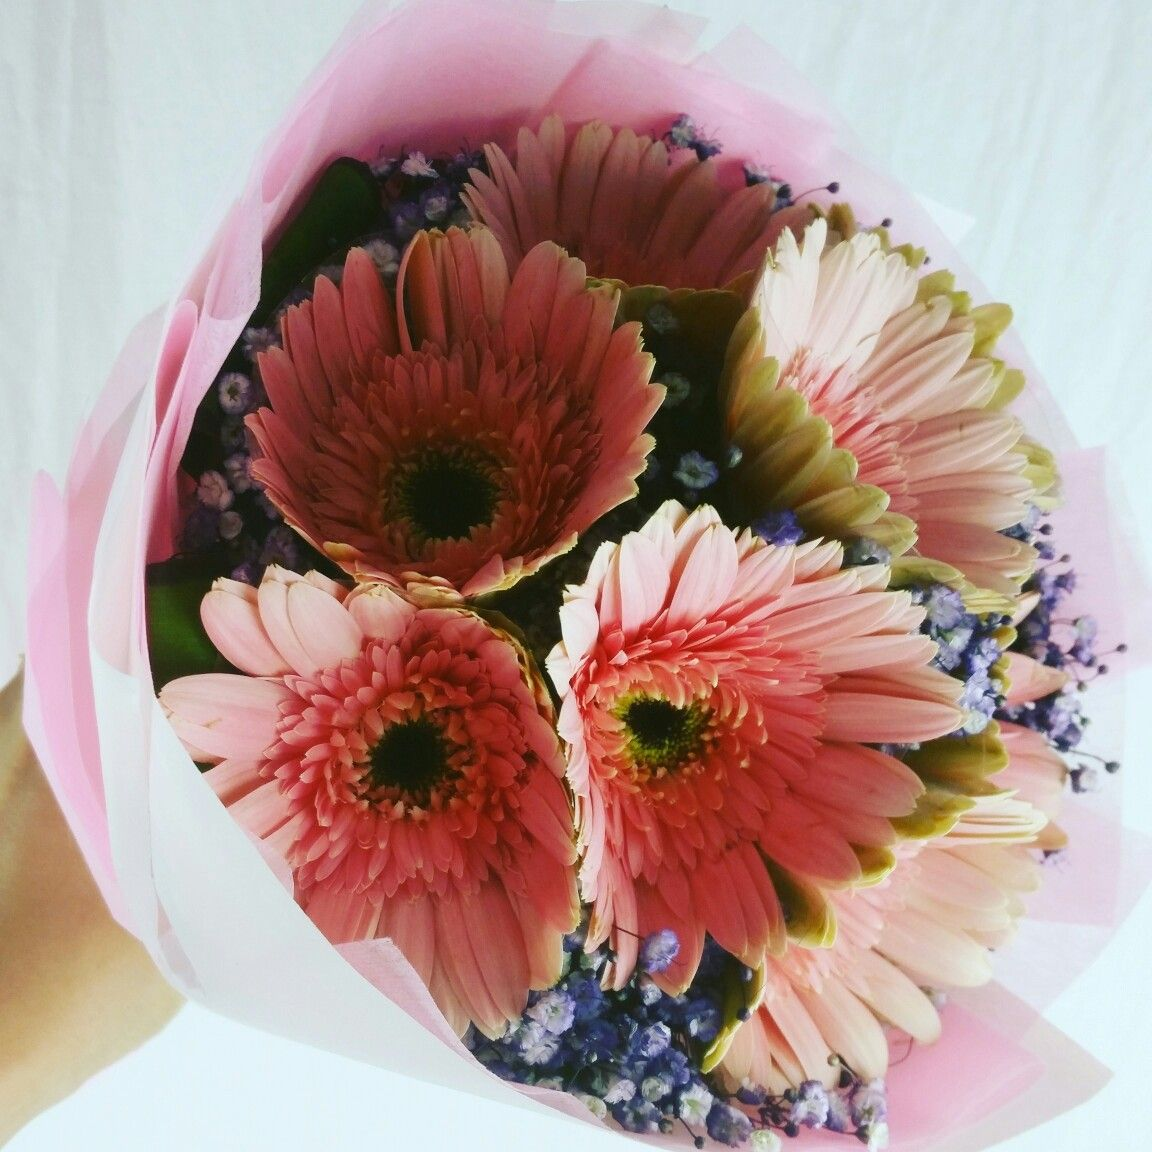 Happy Weekend Send Flower Delivery Singapore To Brighten Her Day